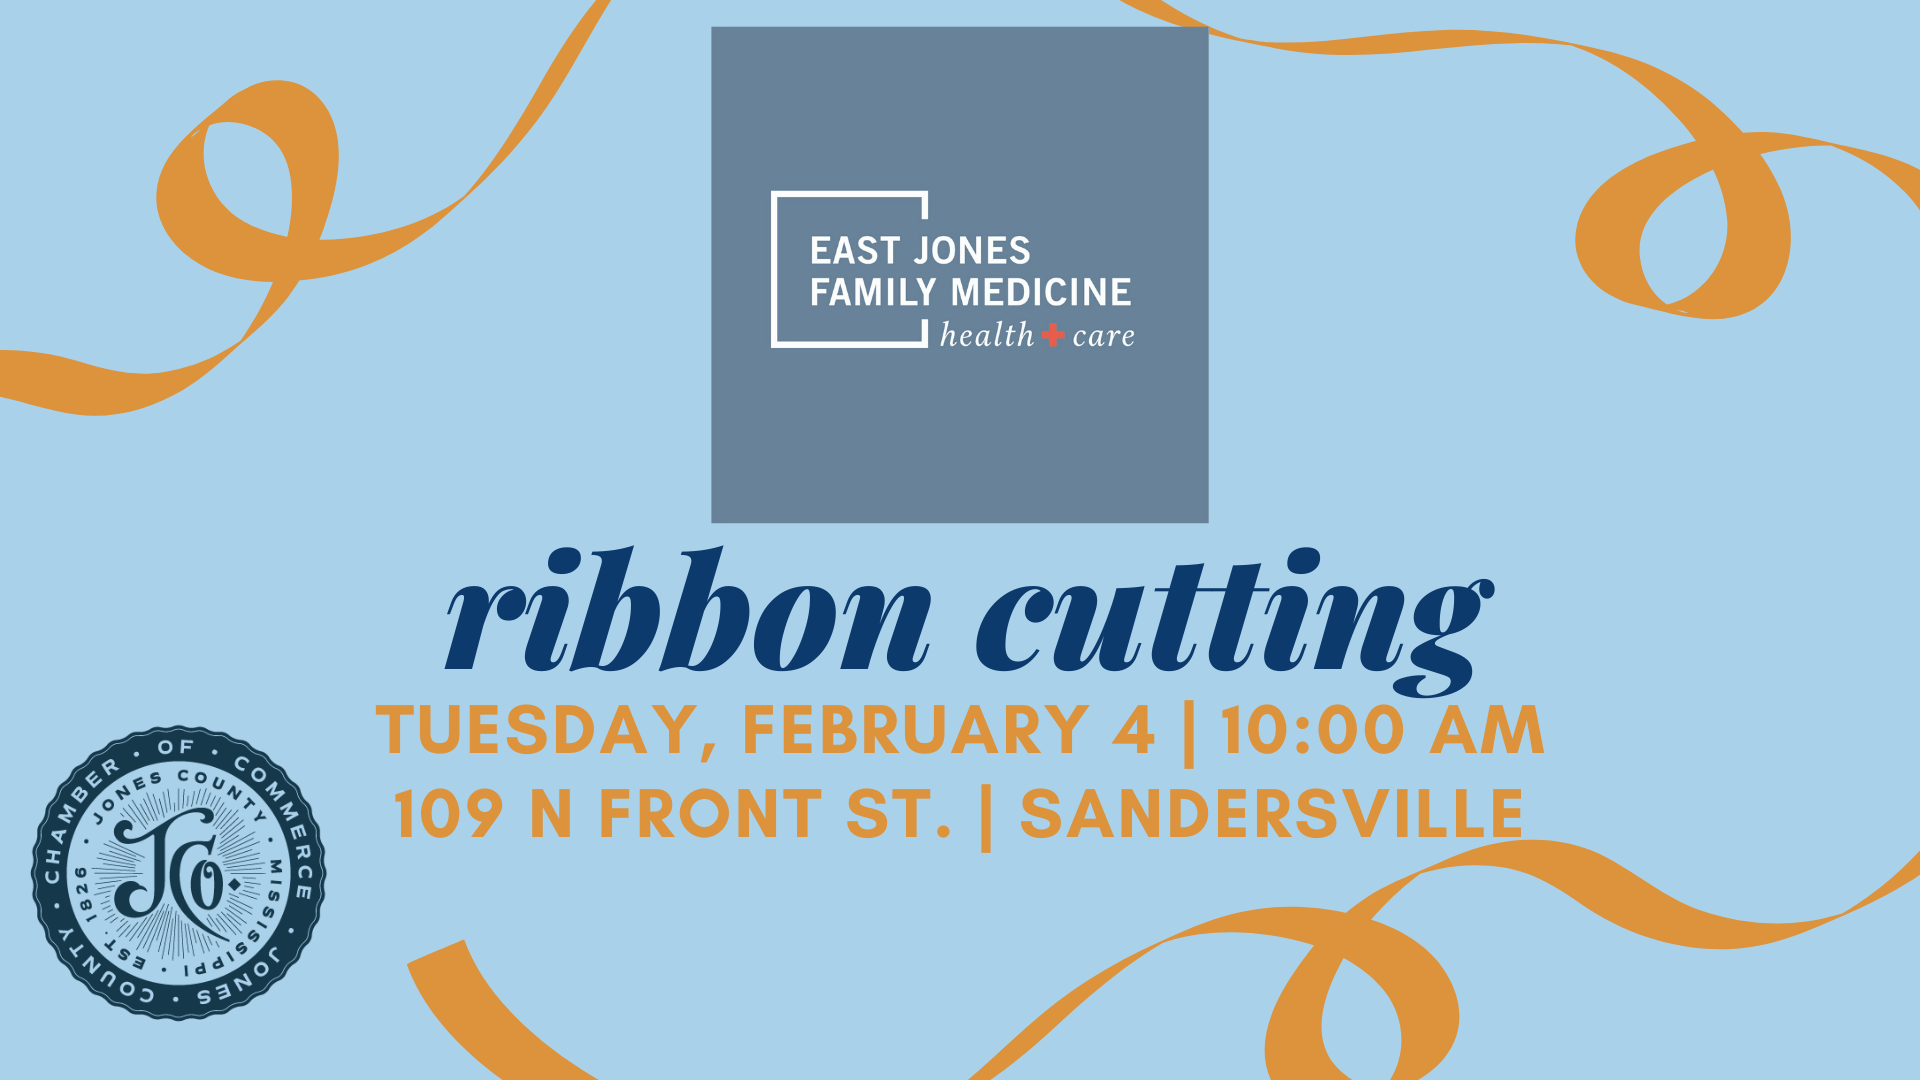 The City of Laurel, East Jones Family Medicine Ribbon Cutting